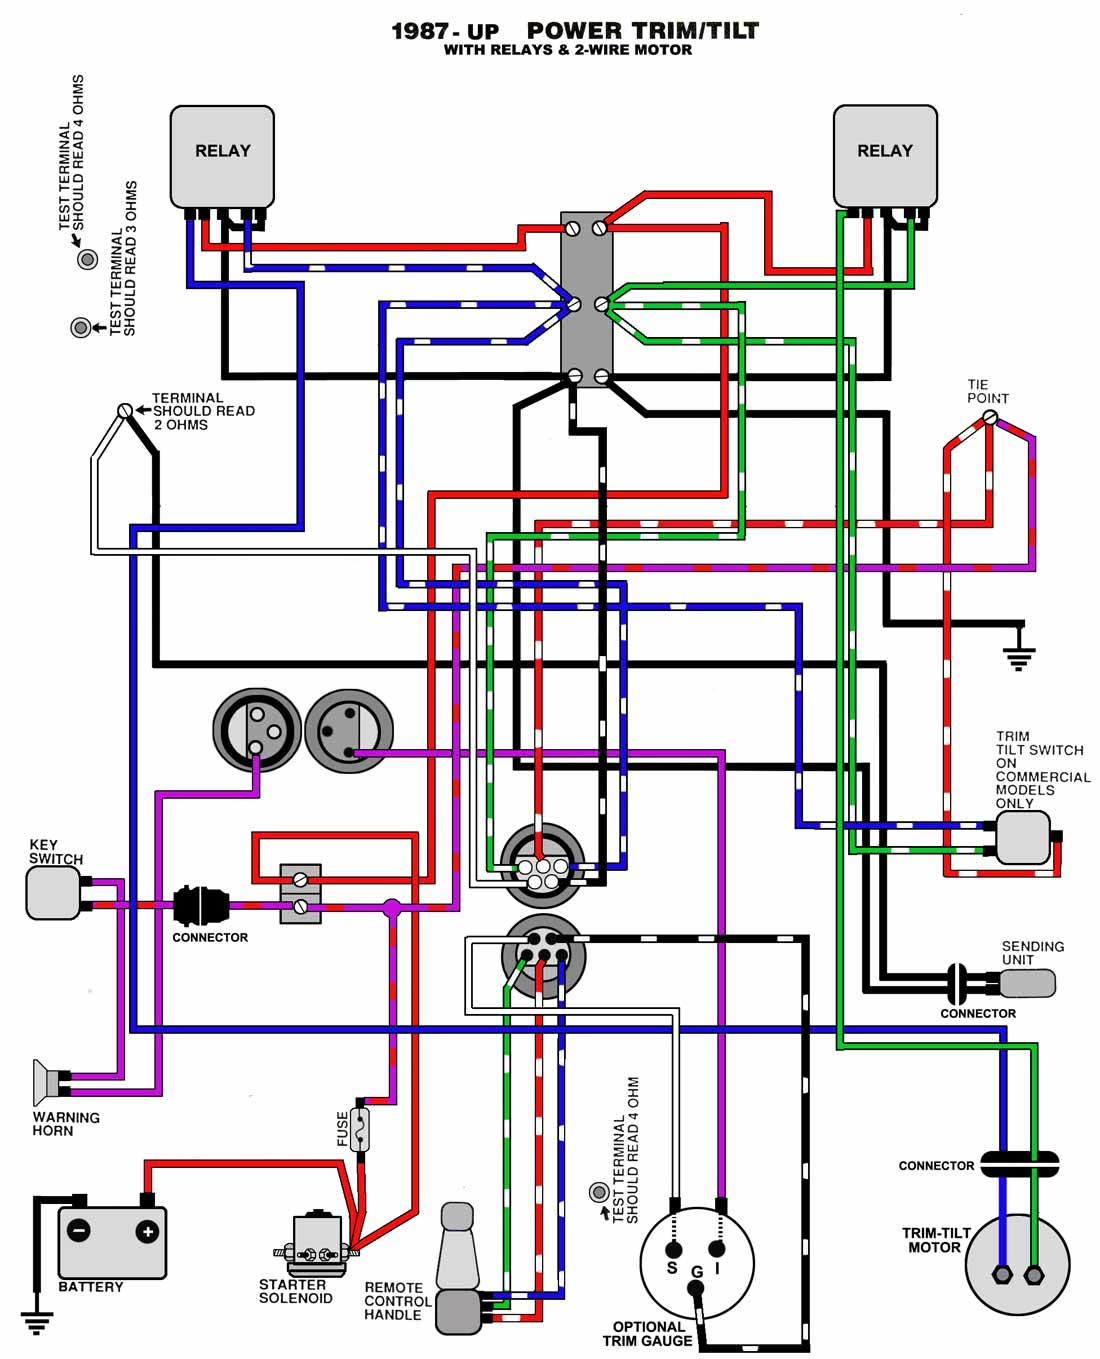 TnT_87_UP mastertech marine evinrude johnson outboard wiring diagrams evinrude key switch wiring diagram at soozxer.org